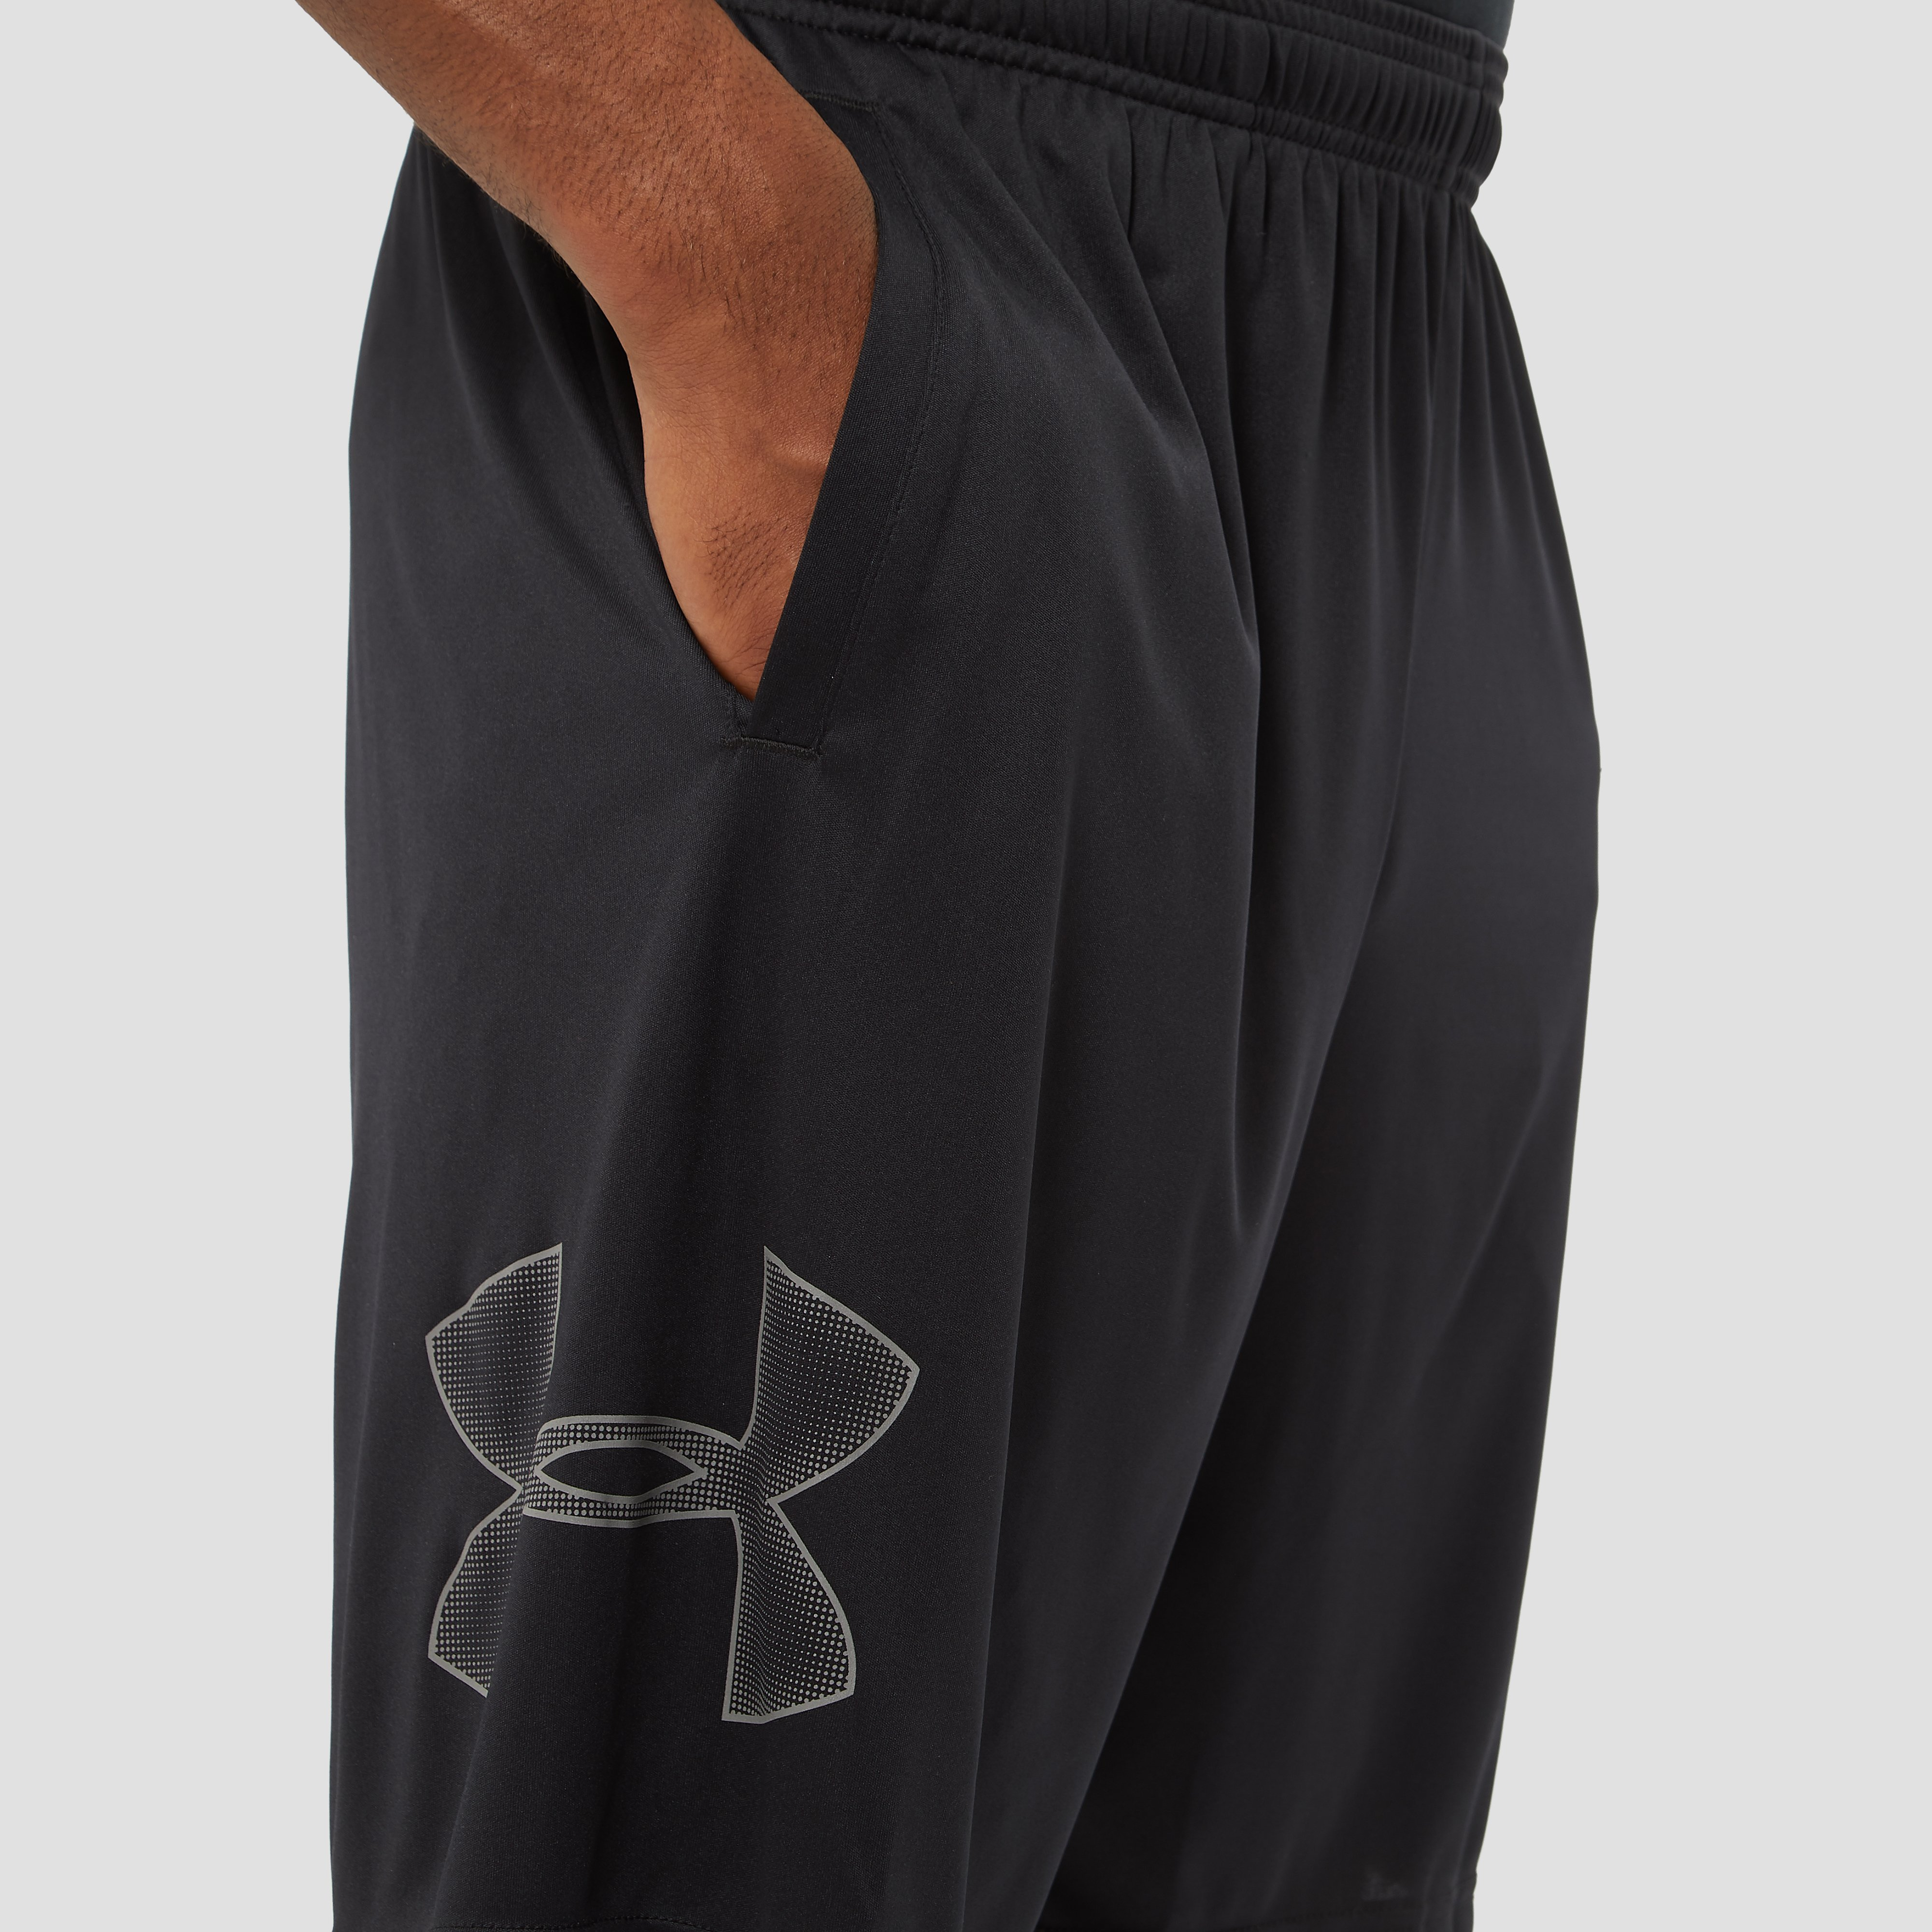 UNDER ARMOUR TECH GRAPHIC SPORTBROEKJE ZWART HEREN